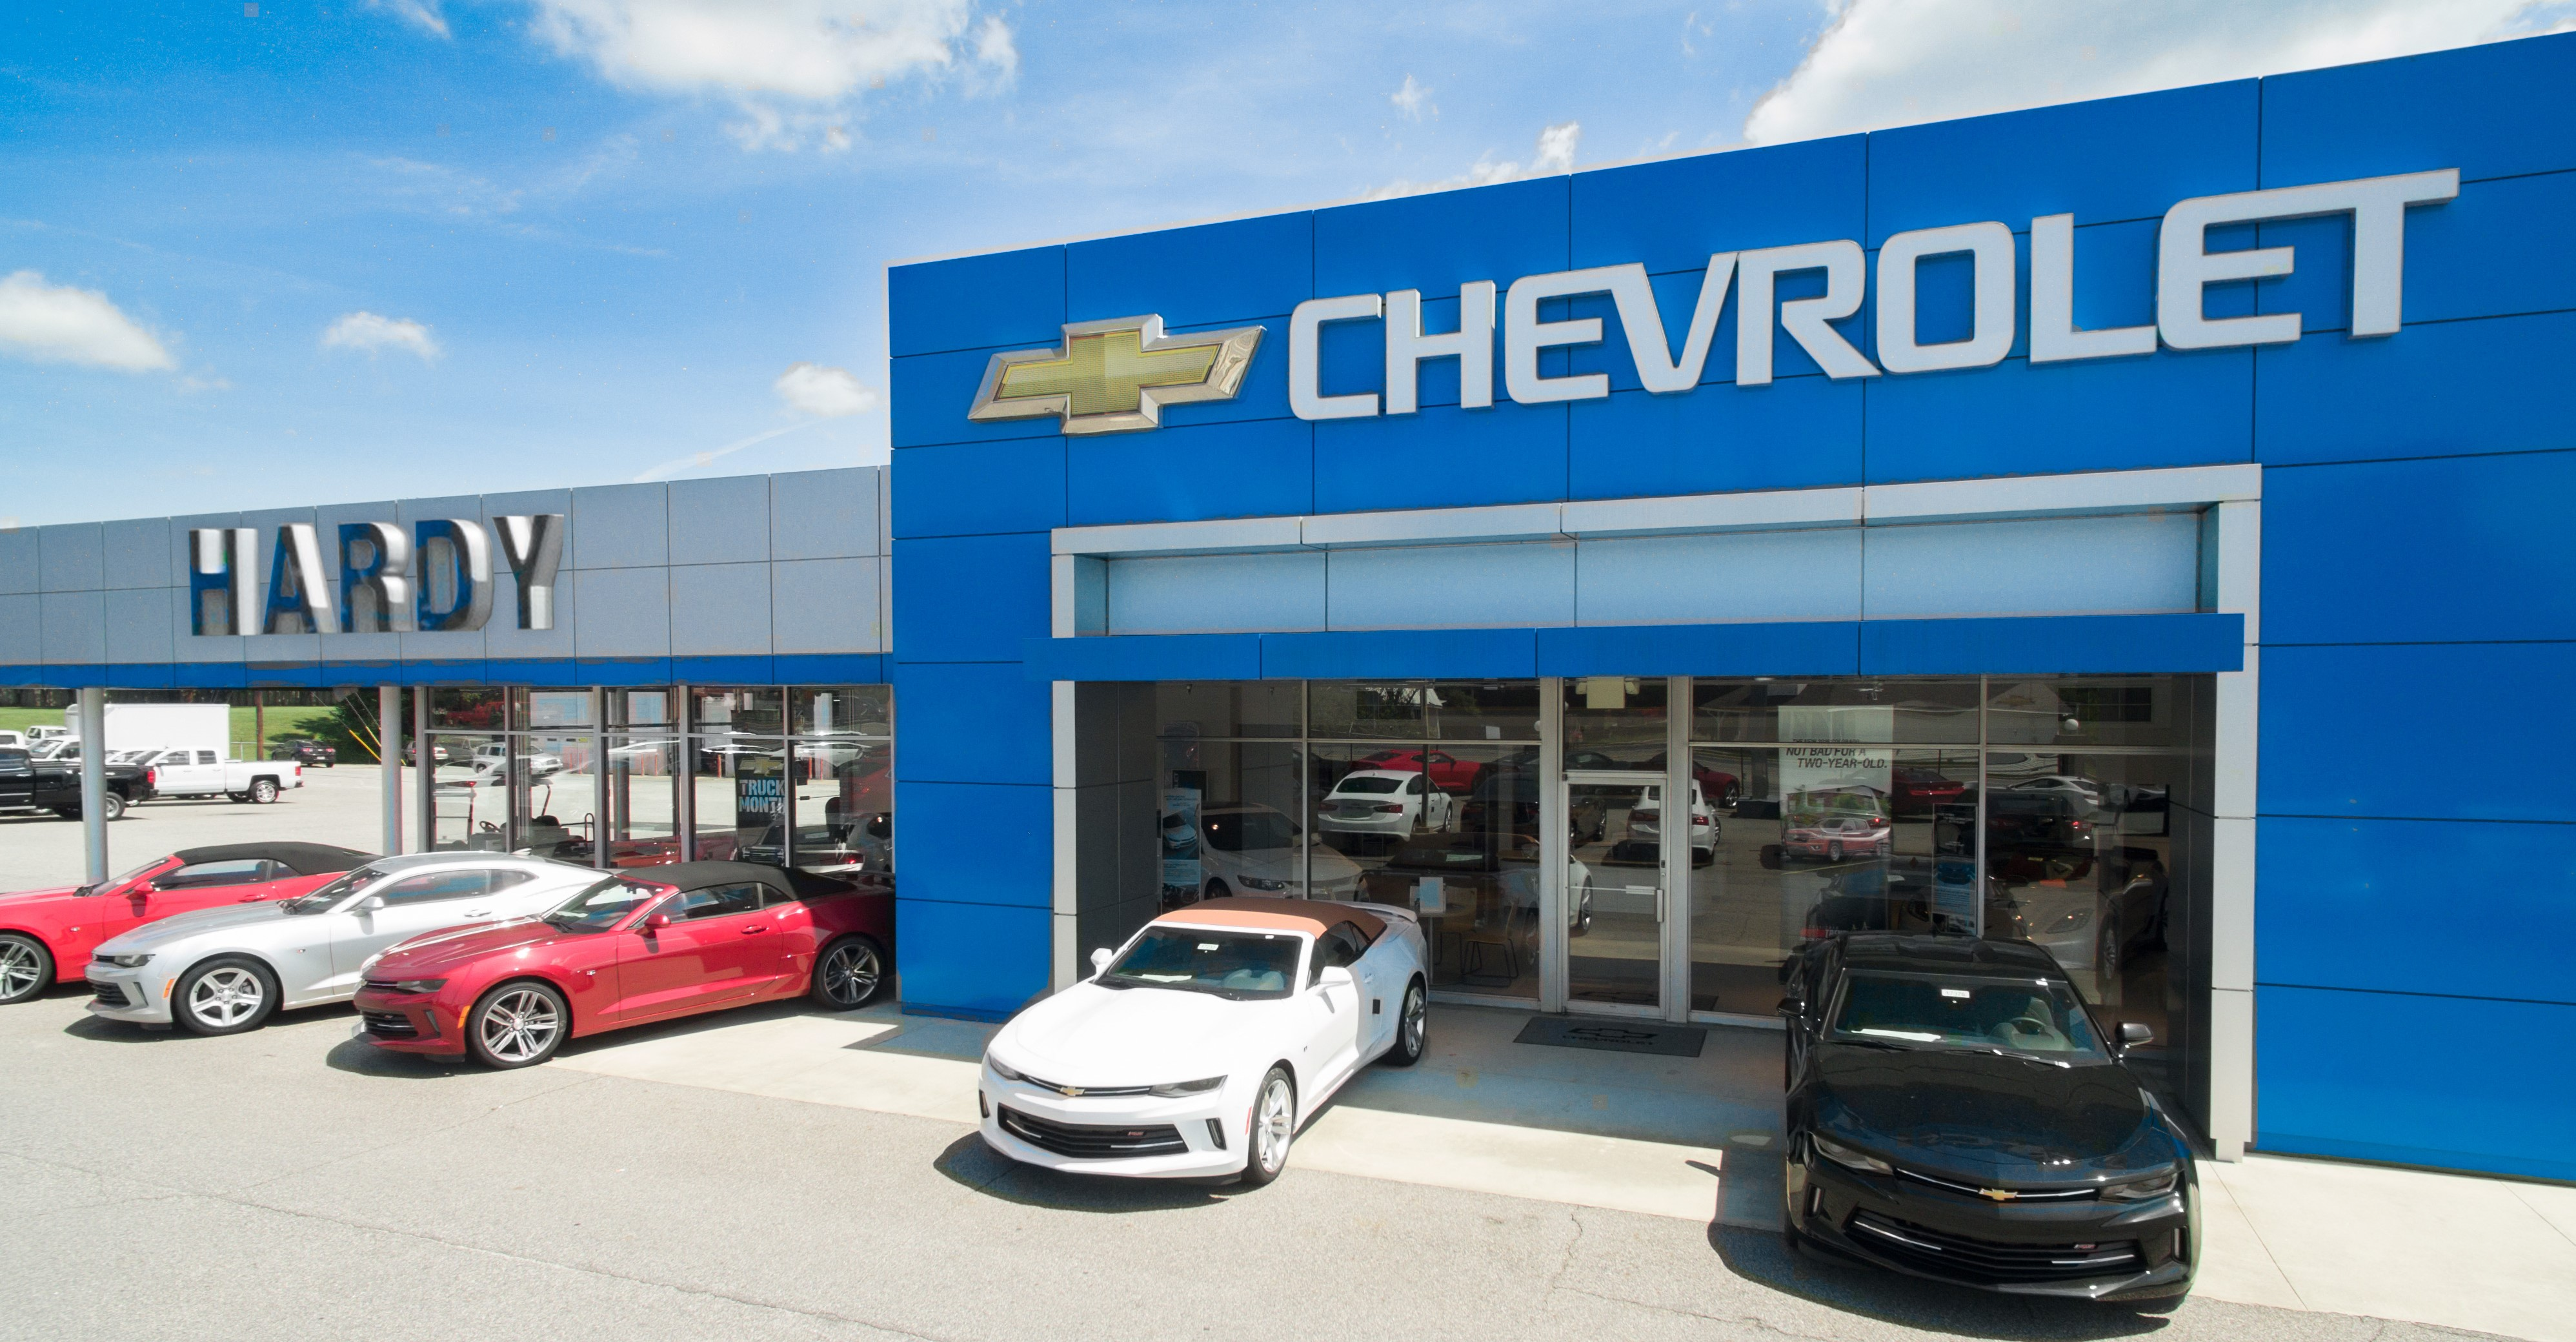 used cars gainesville best of used car dealerships in gainesville fl best of gainesville acura. Black Bedroom Furniture Sets. Home Design Ideas